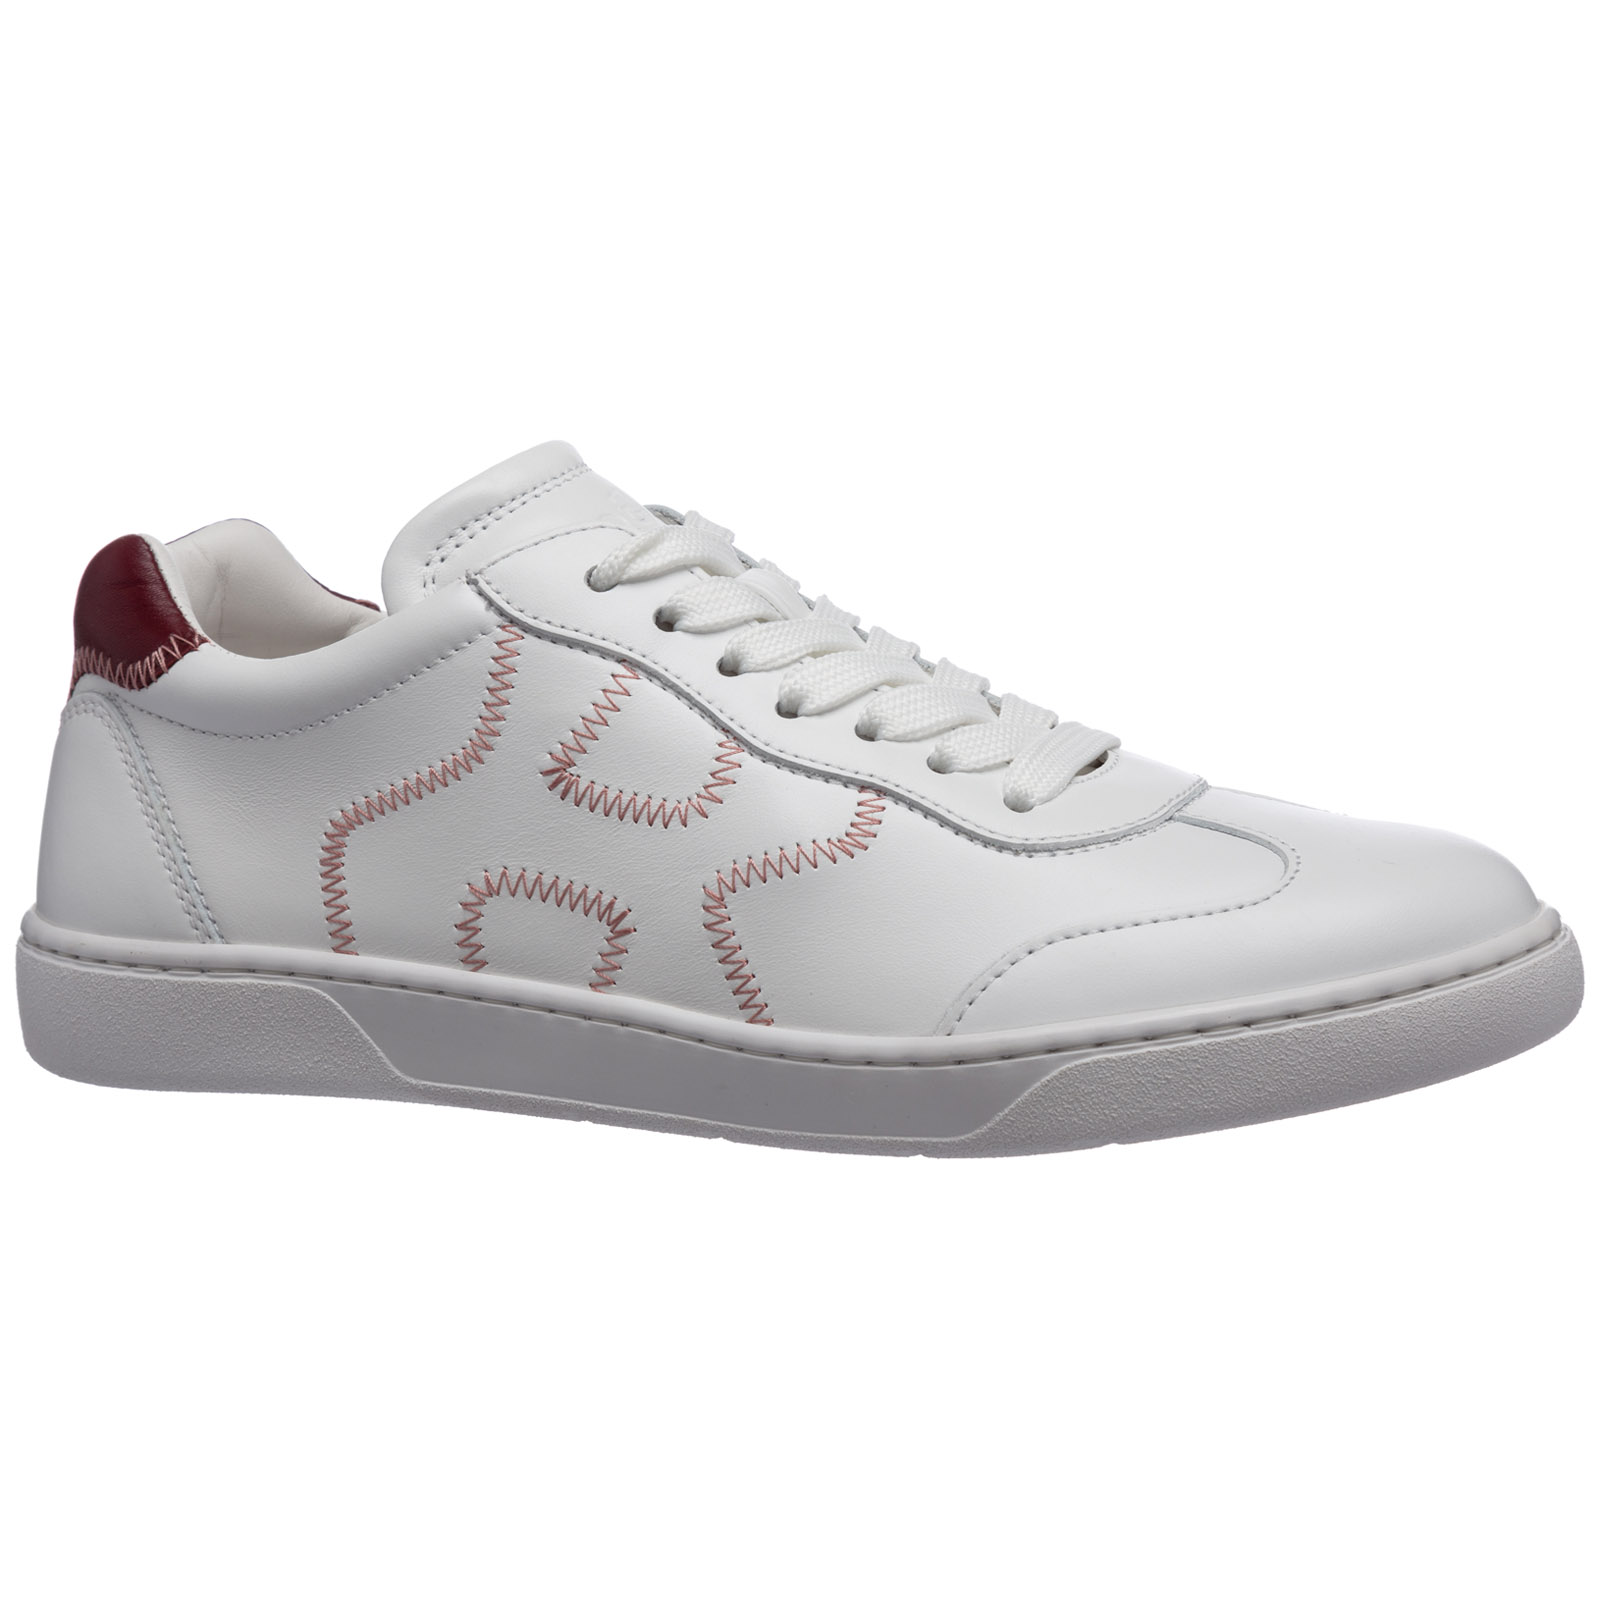 Women's shoes leather trainers sneakers h327